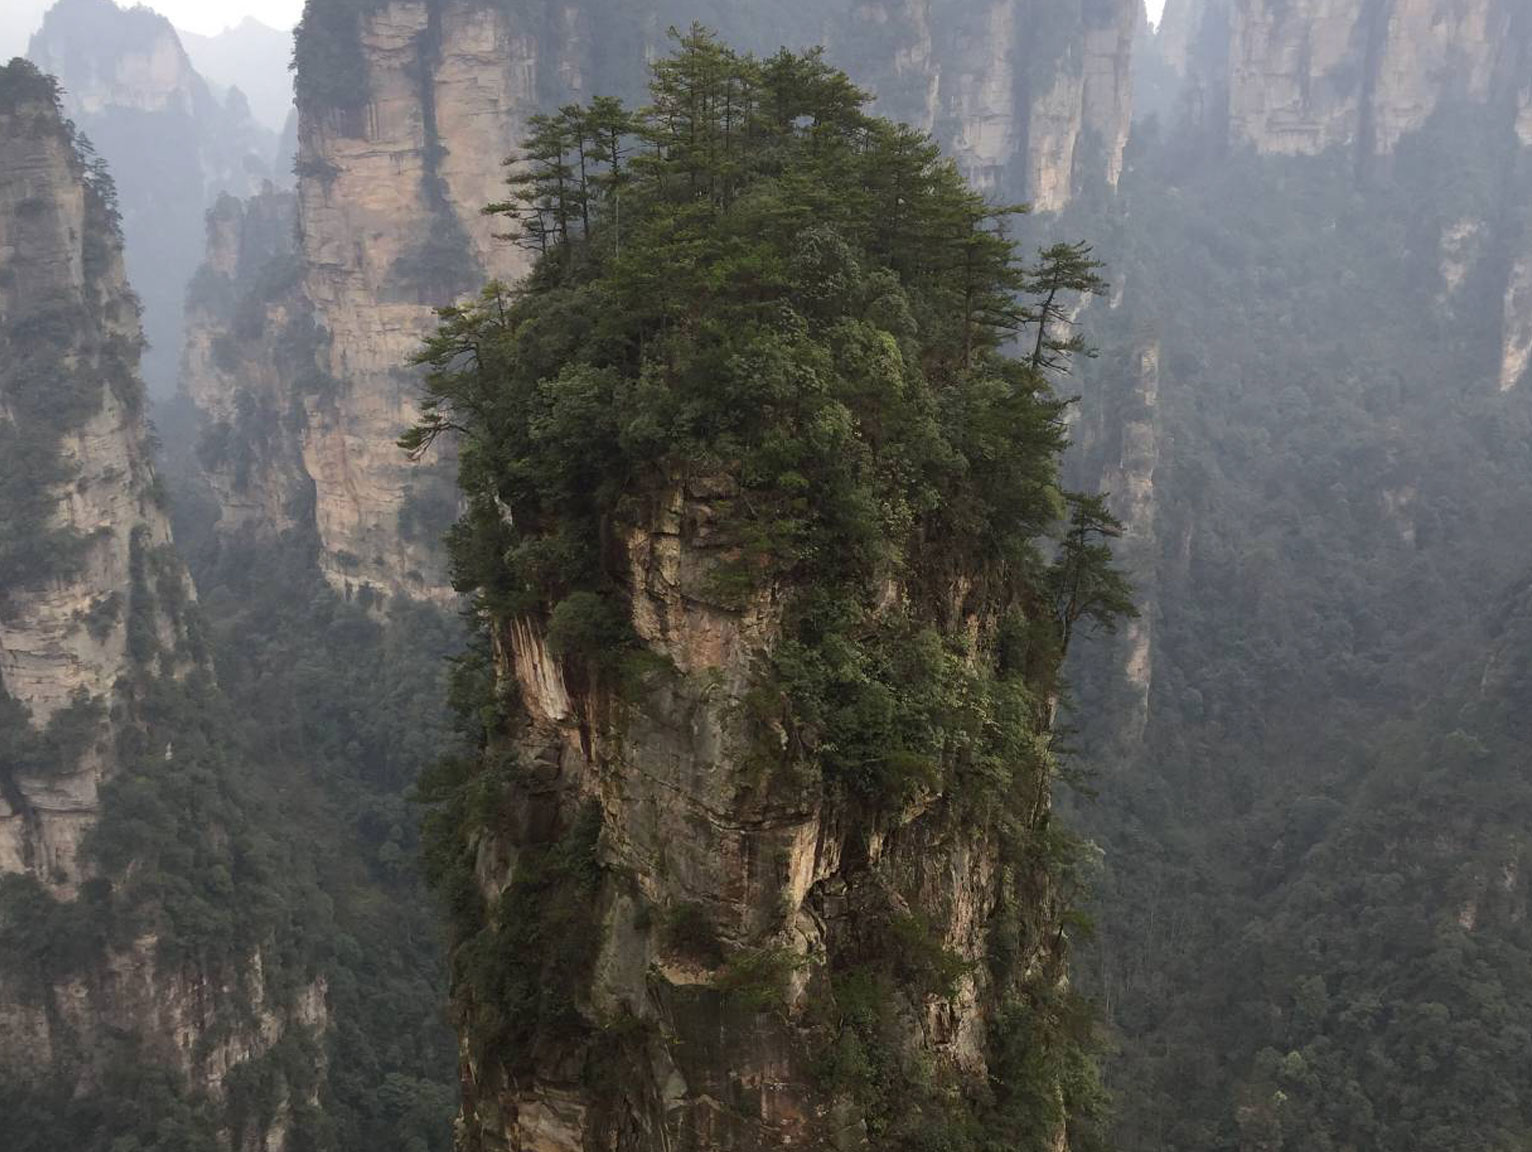 Zhangjiajie National Park (Avatar Land) – Best place in China?